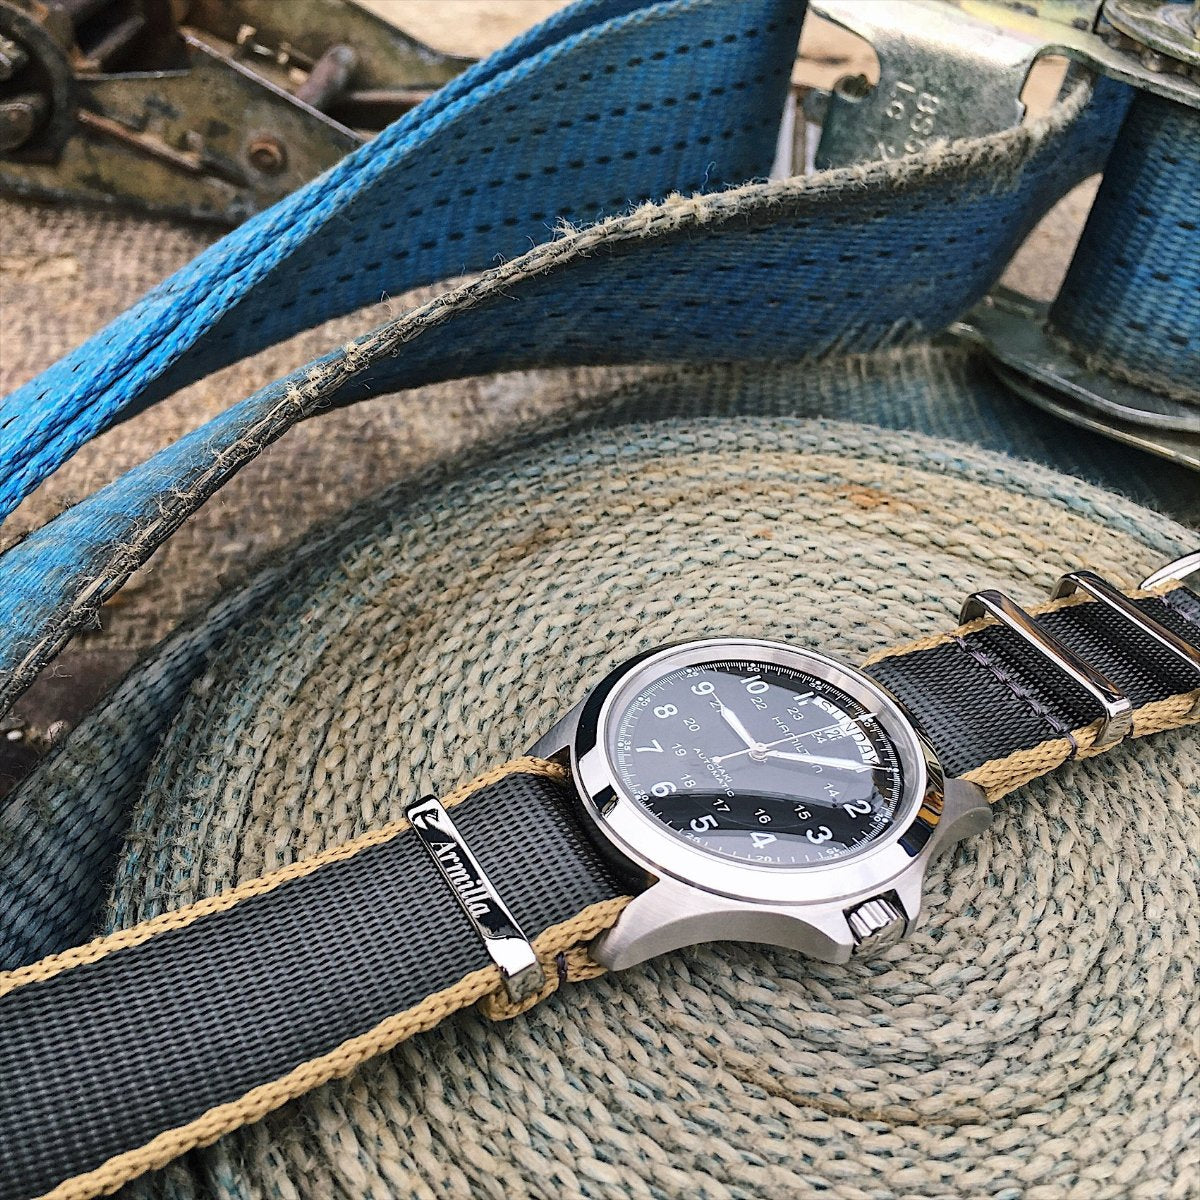 Hamilton Khaki on Armilla Grey G10 NATO Watch Strap / Band